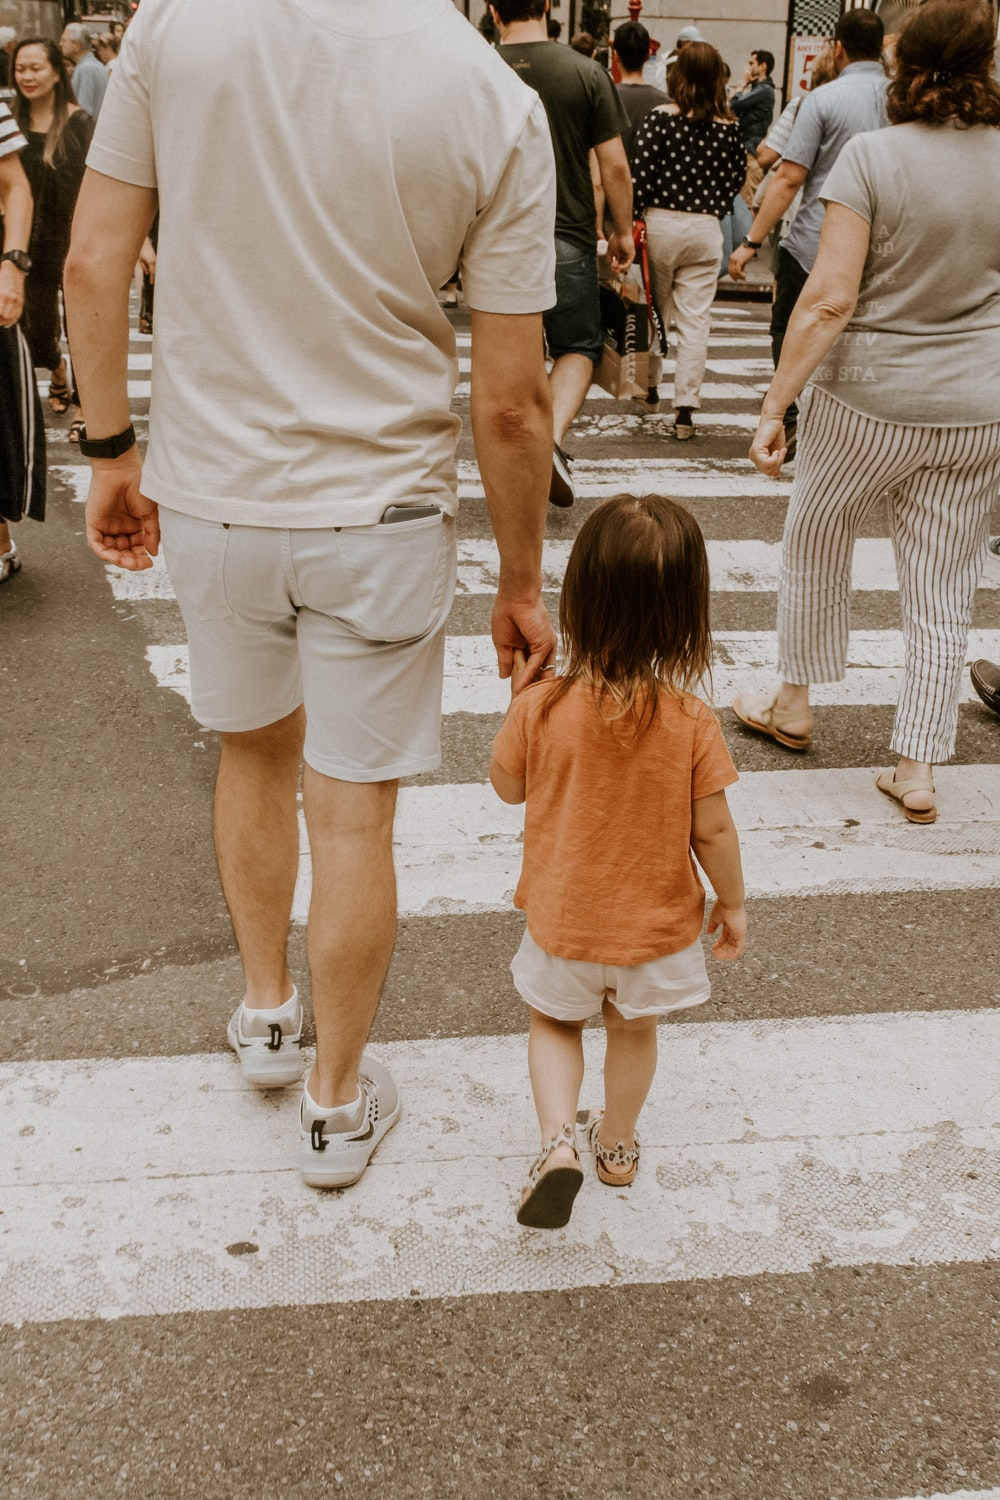 man walking on pedestrian lane with girl